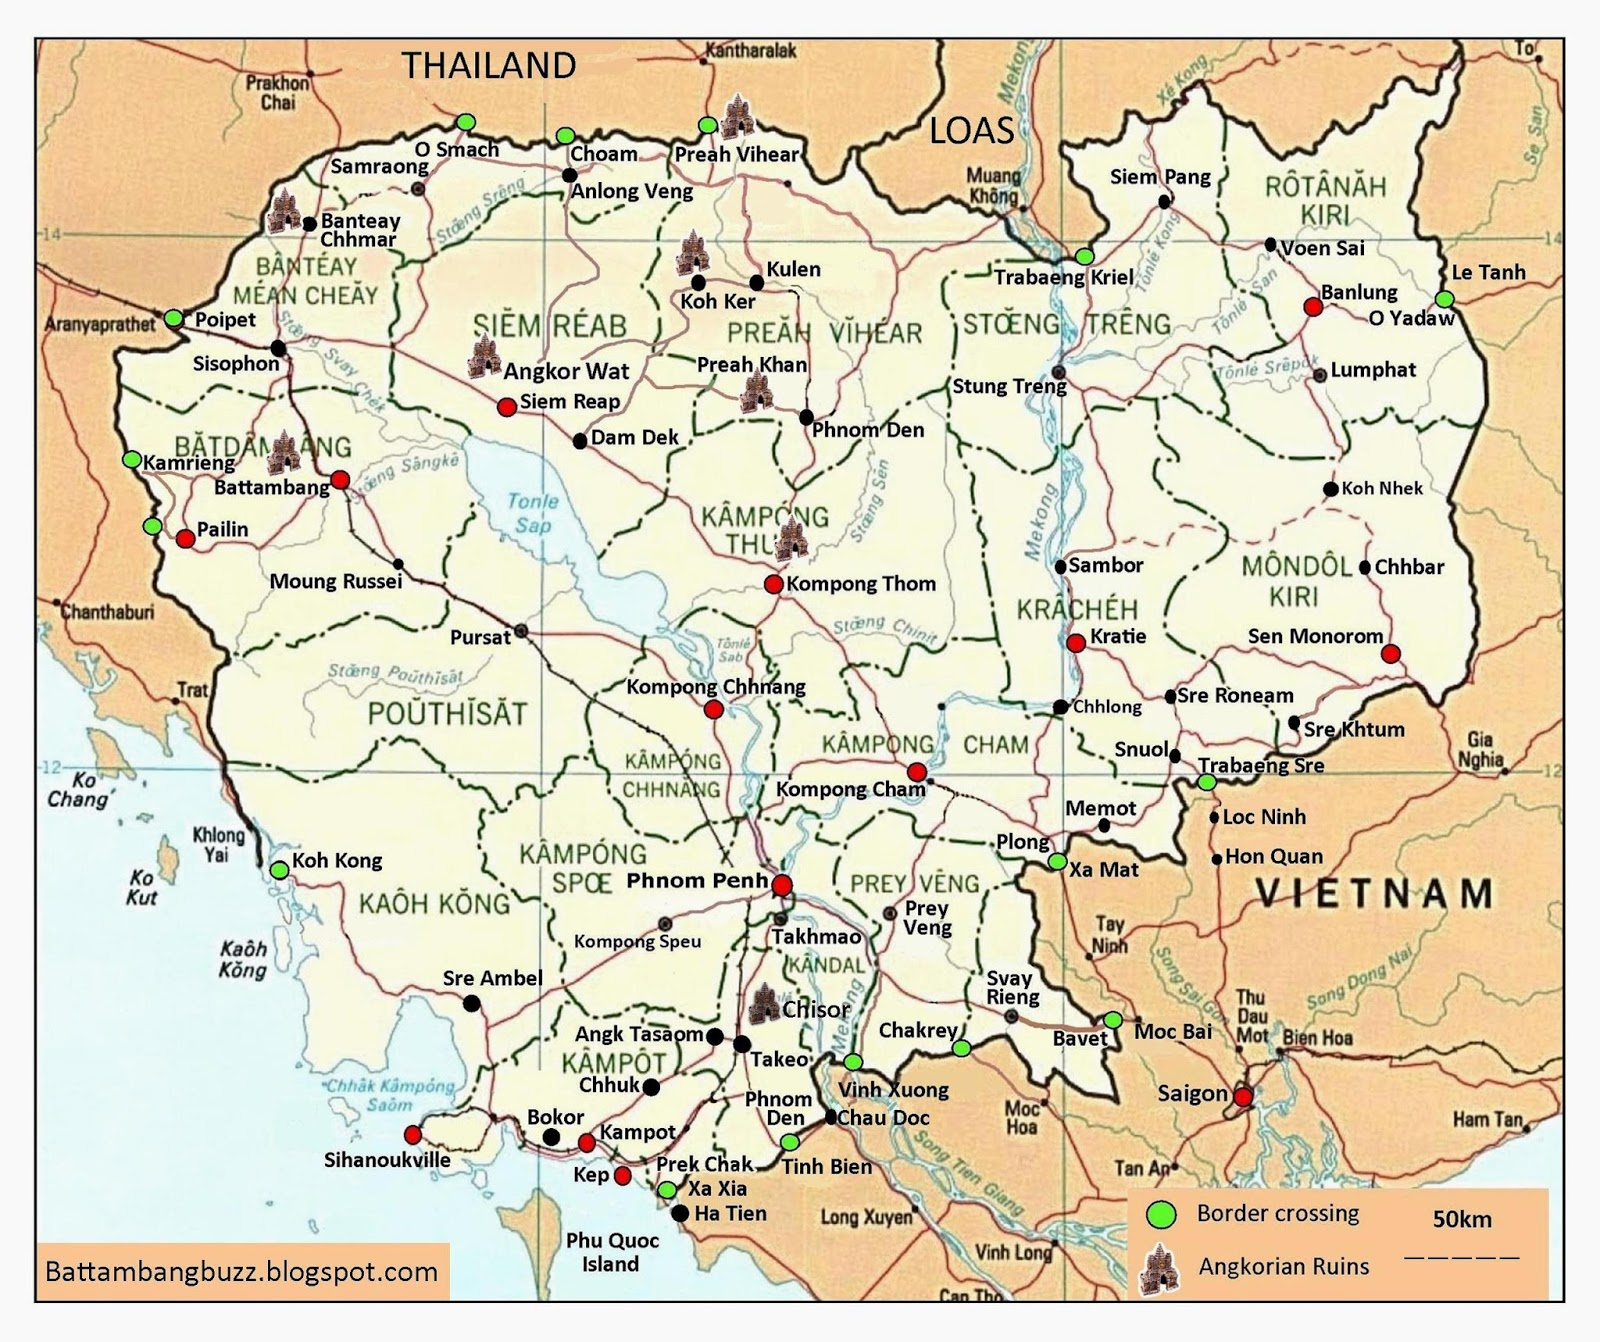 All About Battambang Cambodia Travel Map with Border Crossings 2018